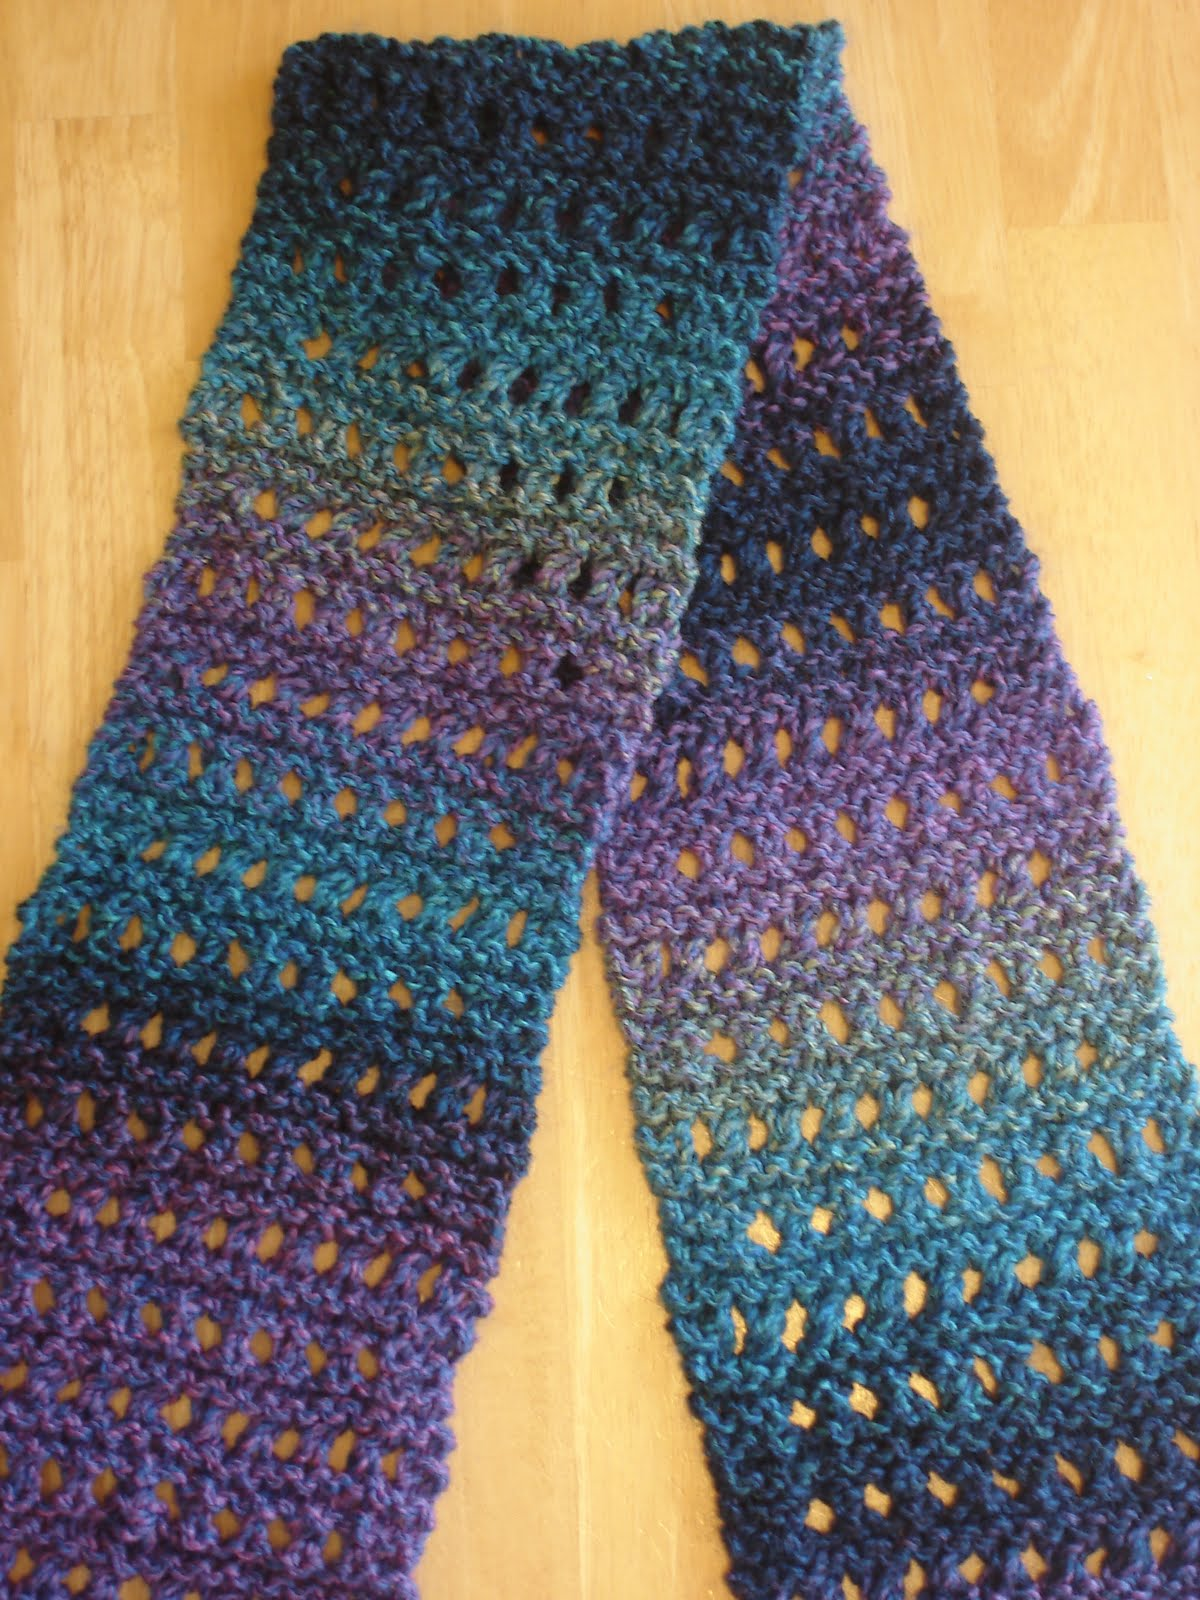 Knitting Patterns For Scarfs : Fiber Flux: Free Knitting Pattern: Tweedy Eyelet Scarf!